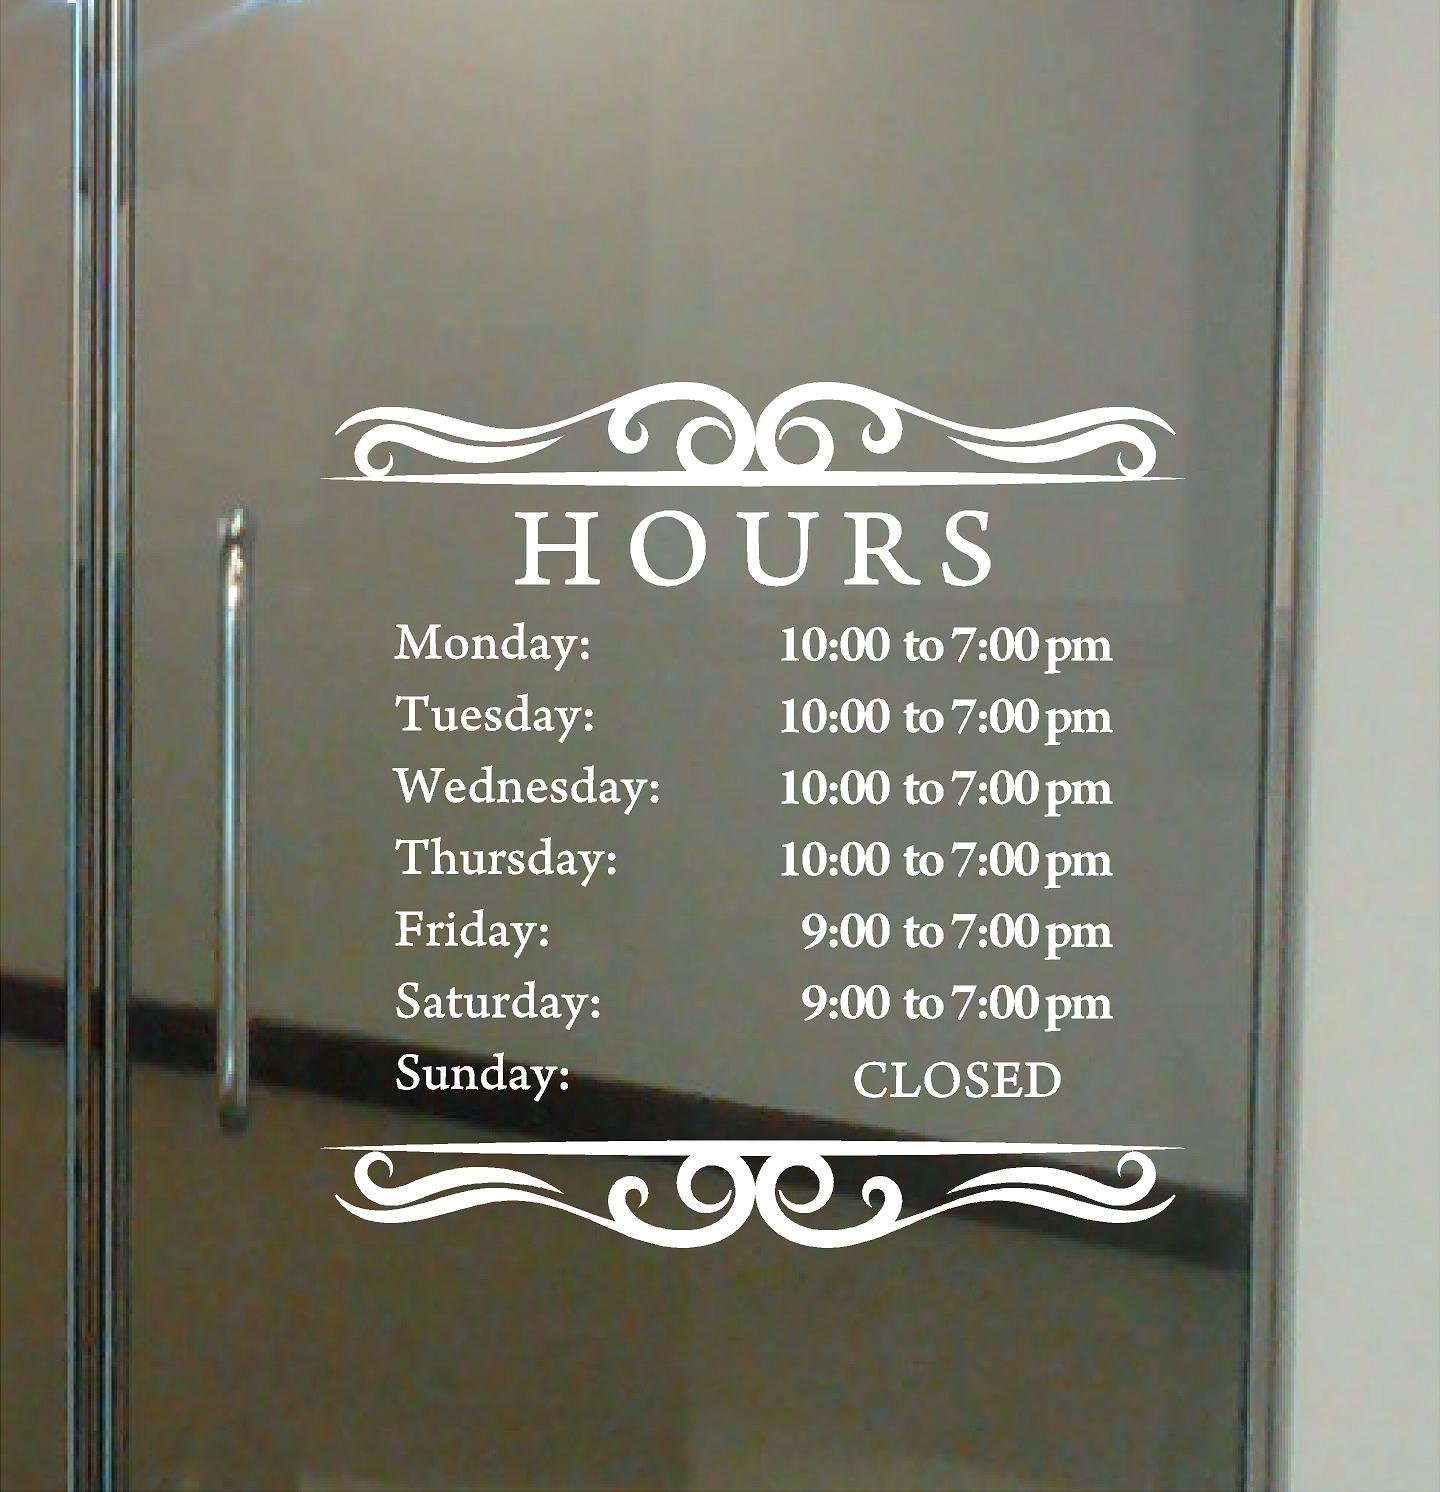 Custom business hours sign for glass door windows smooth surfaces hours of operation sign open closed store hours sign 12 x 12 style 1 by